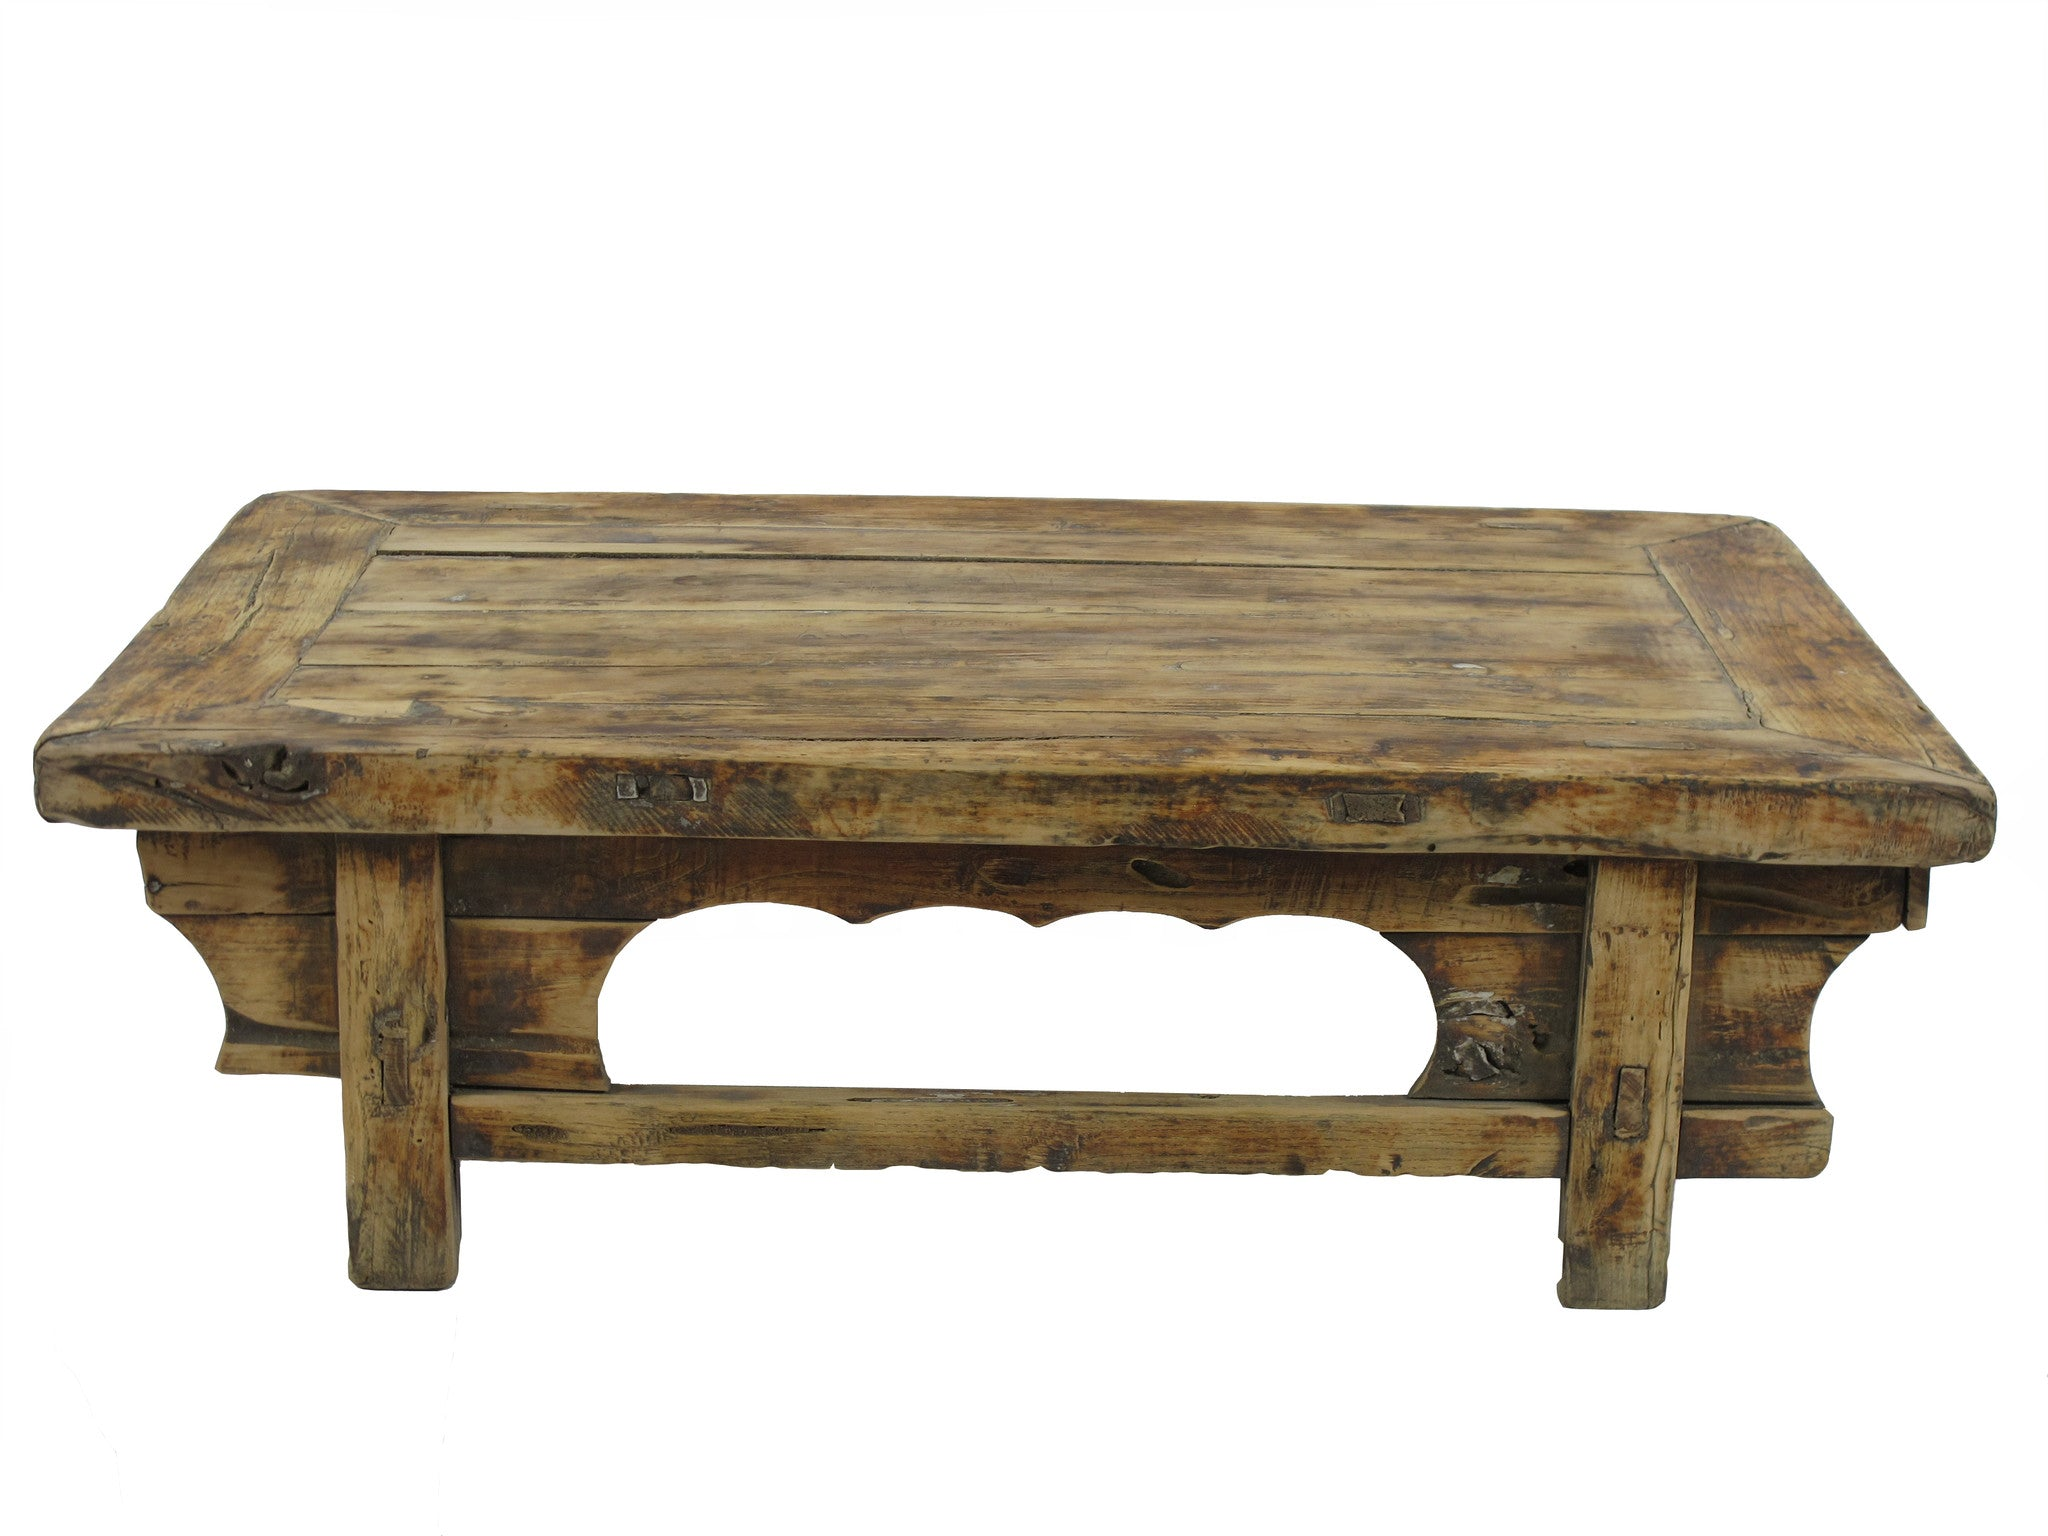 Low Rustic Accent Table Or Coffee Table 1 Dyag East